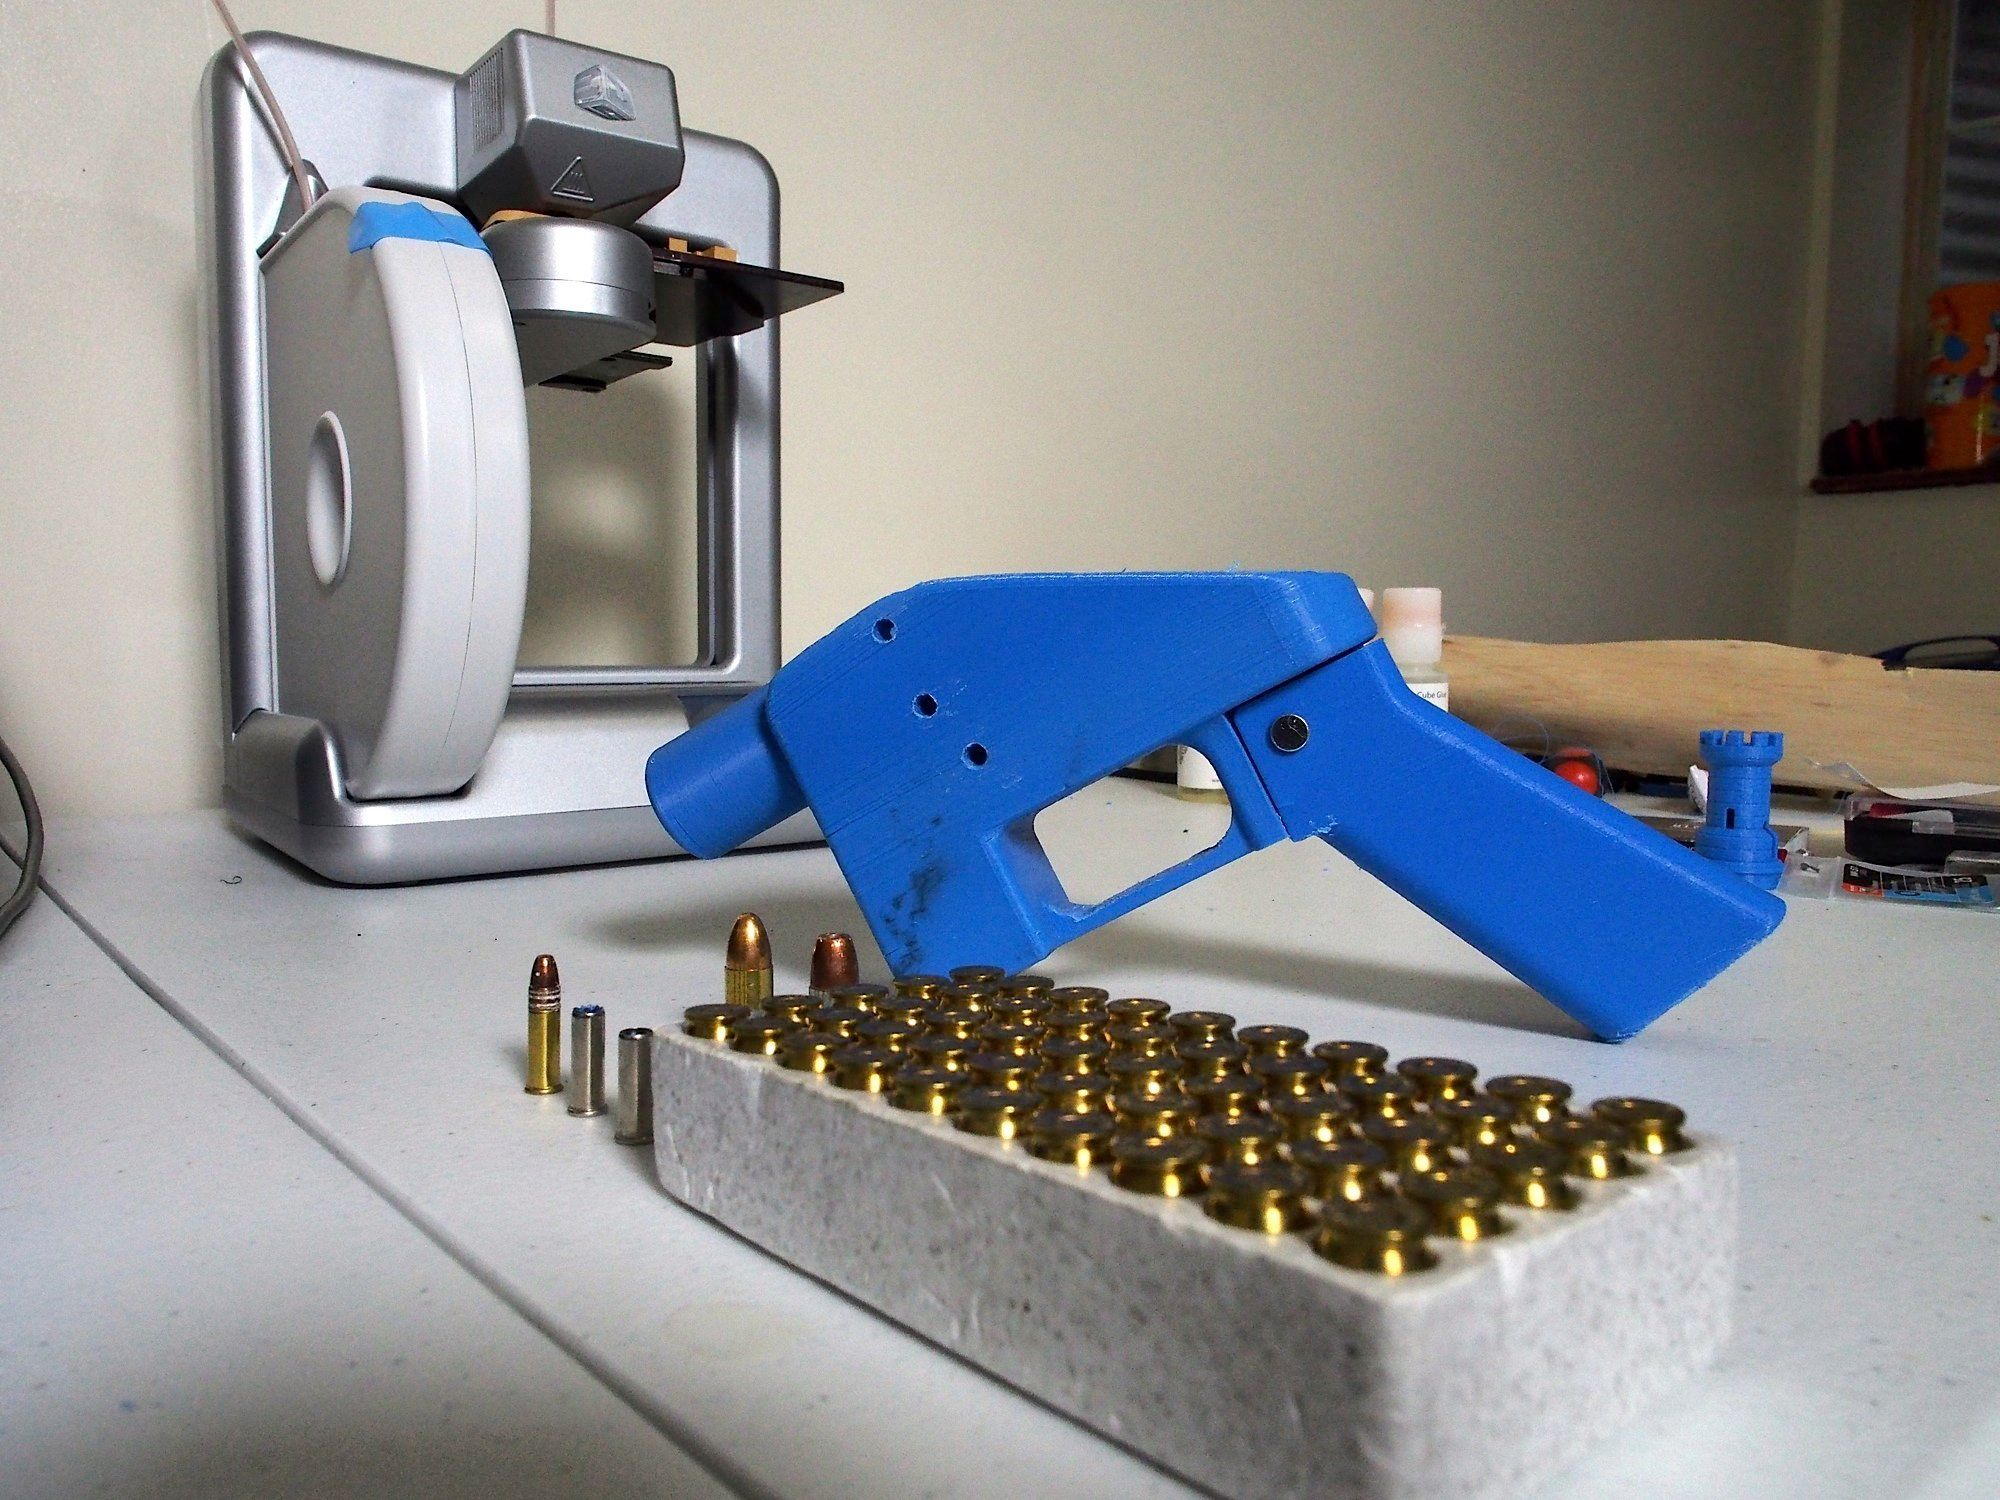 A Liberator pistol appears on July 11, 2013 next to the 3D printer on which its components were made. The single-shot handgun